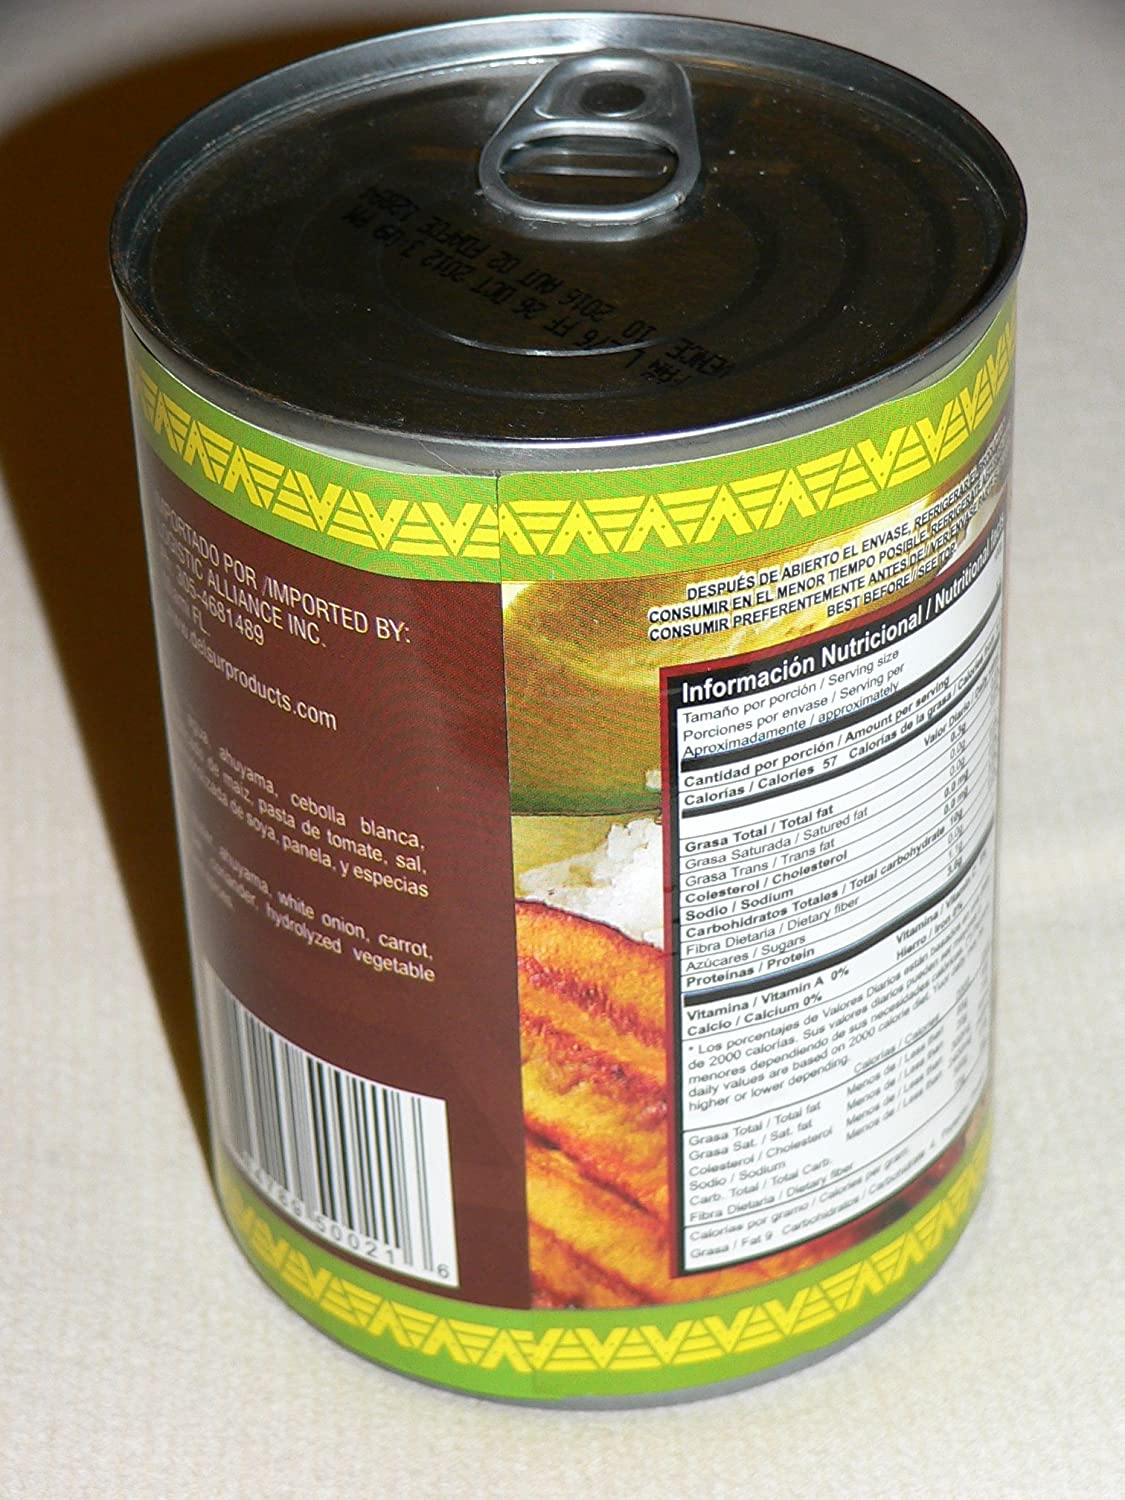 Amazon.com : Red Beans Frijoles Antioqueños Cargamanto Del Sur (7 1/2 Pounds) : Canned Beans : Grocery & Gourmet Food